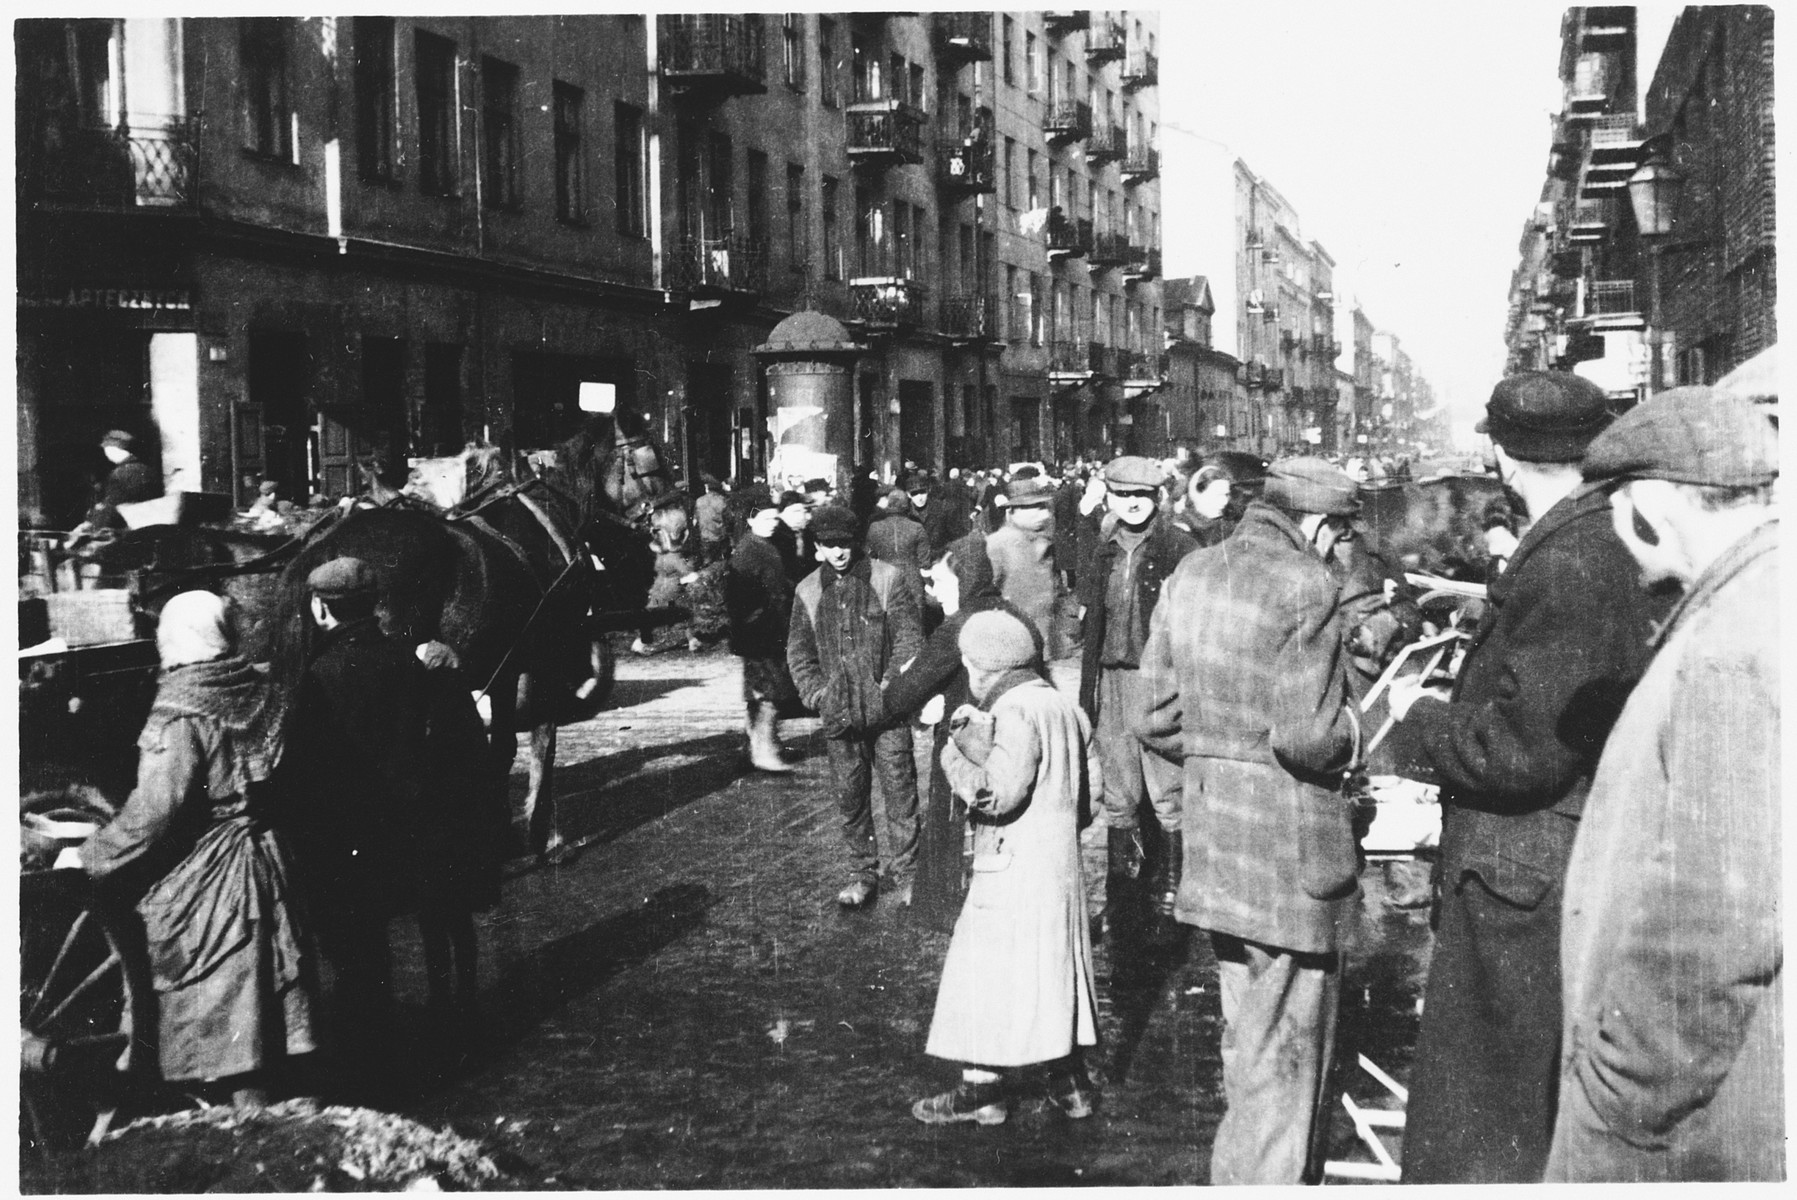 Jews move along a crowded street in the Warsaw ghetto.